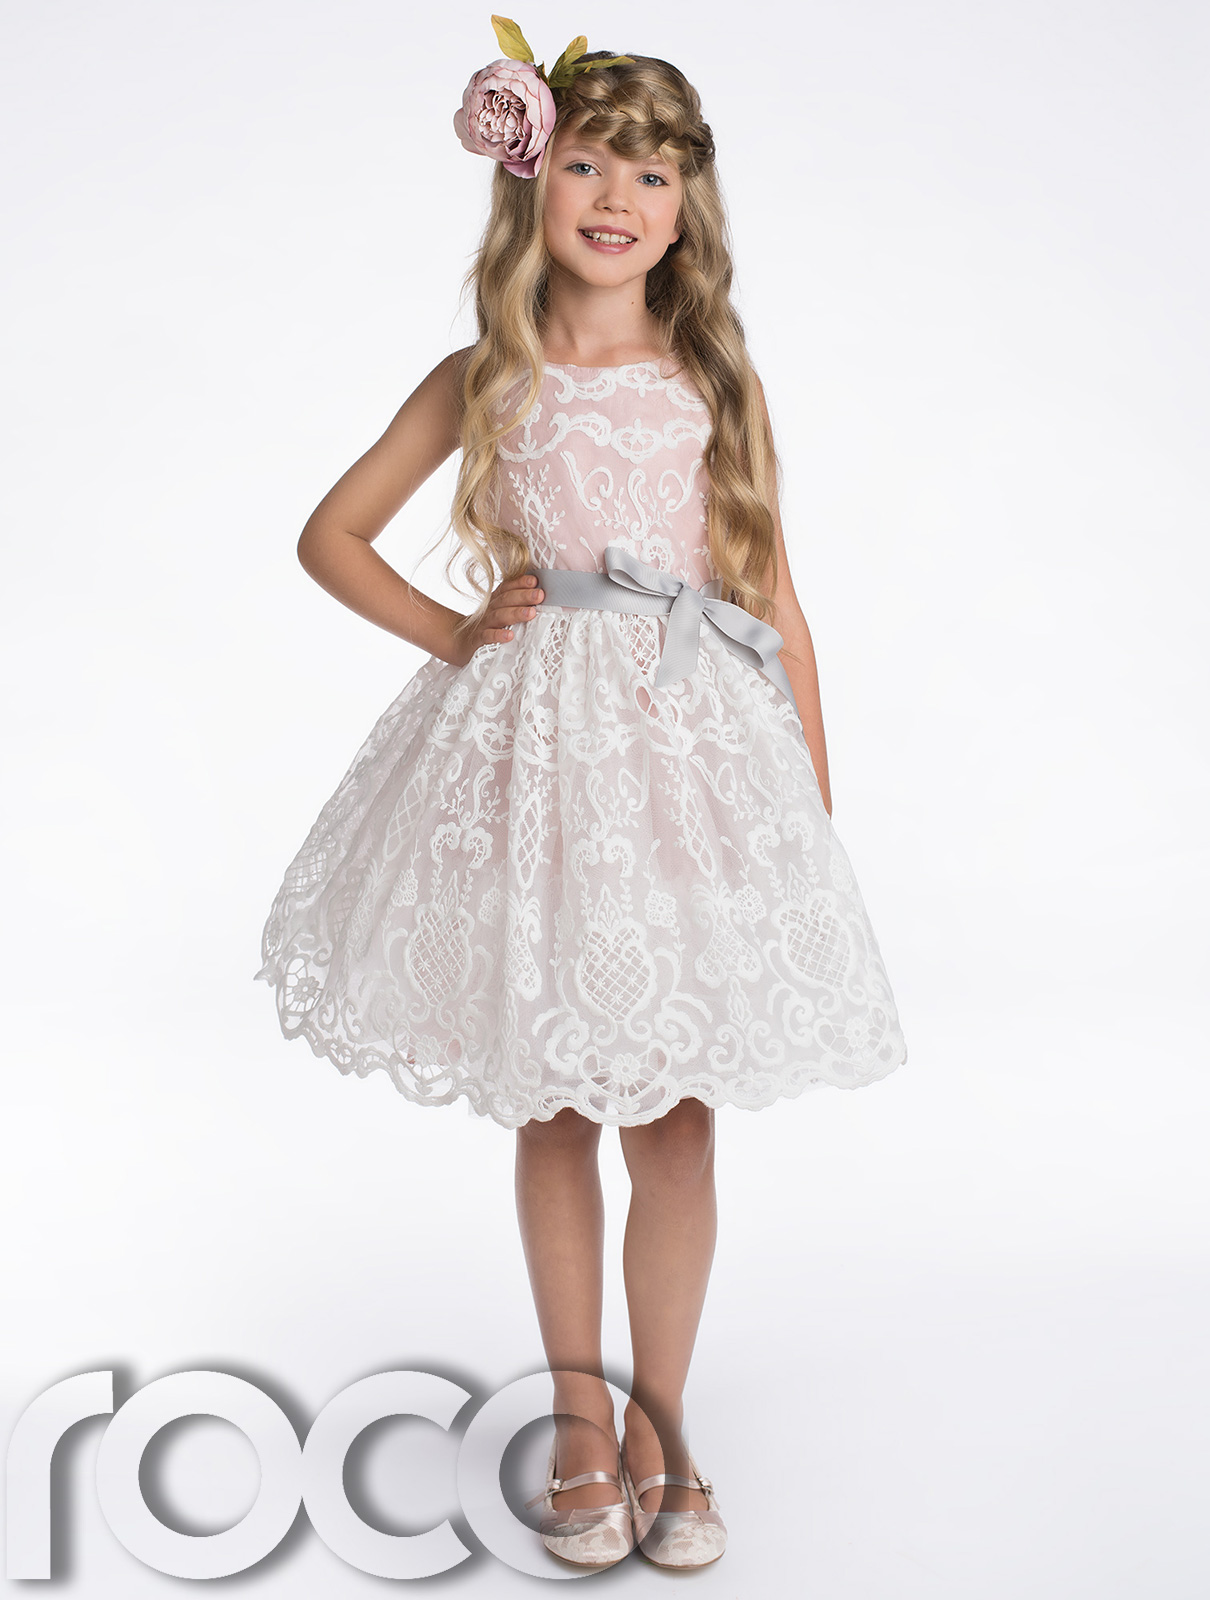 Details about Flower Girl Dresses, Bridesmaid Dress, Champagne Dress, Pink Dress, 2 8 years